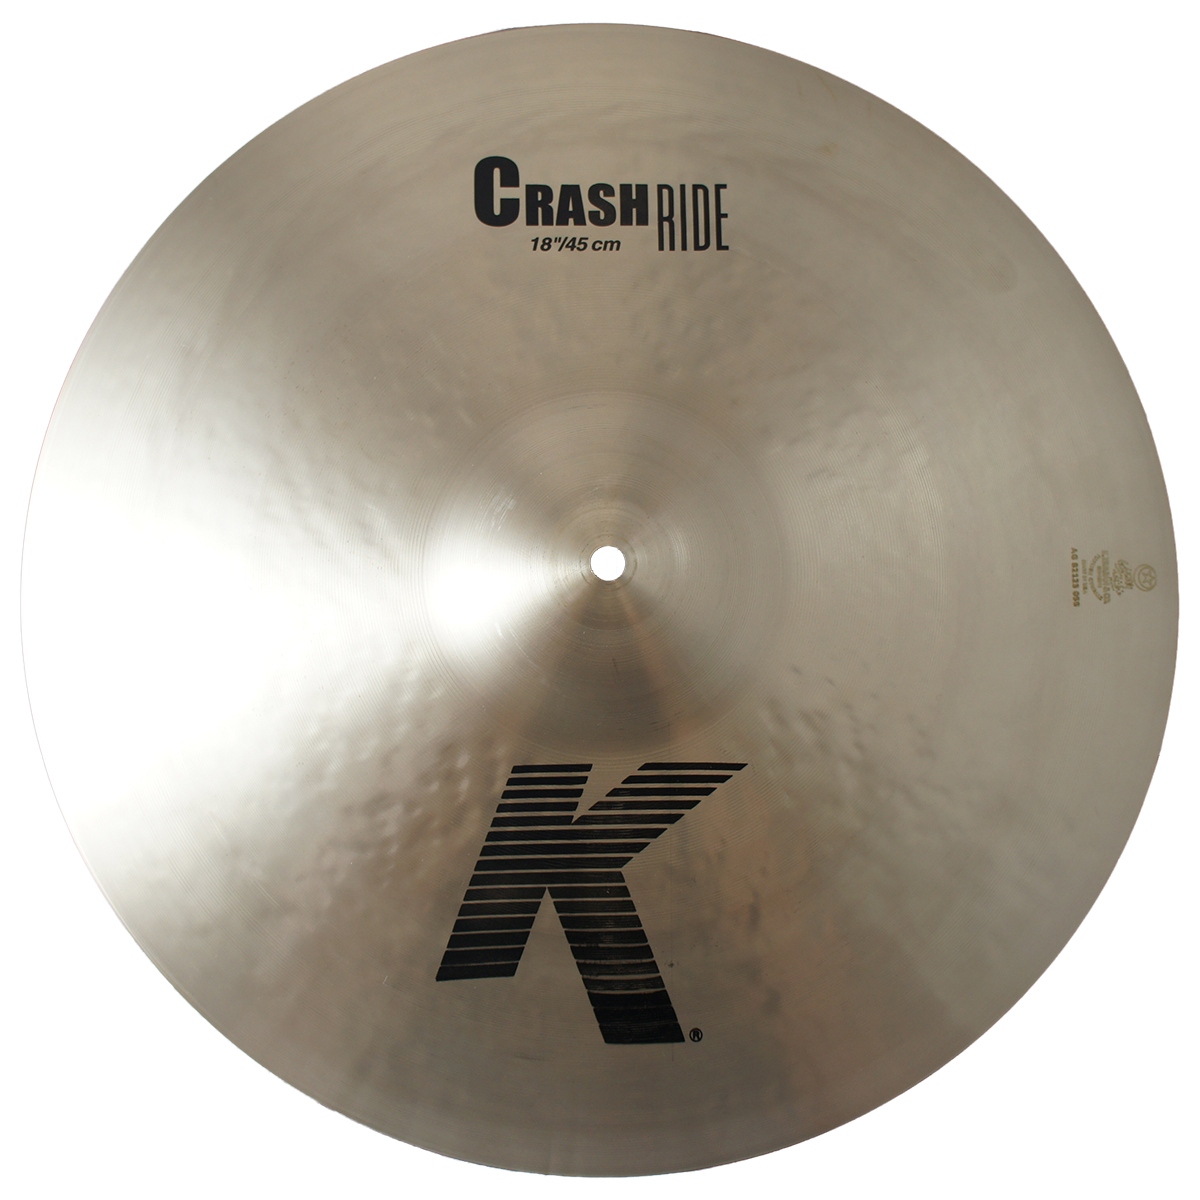 """Zildjian 18"""" K Series Crash Ride Drumset Cymbal with Cast Bronze Material & Mid to Low Profile K0808 - Used"""